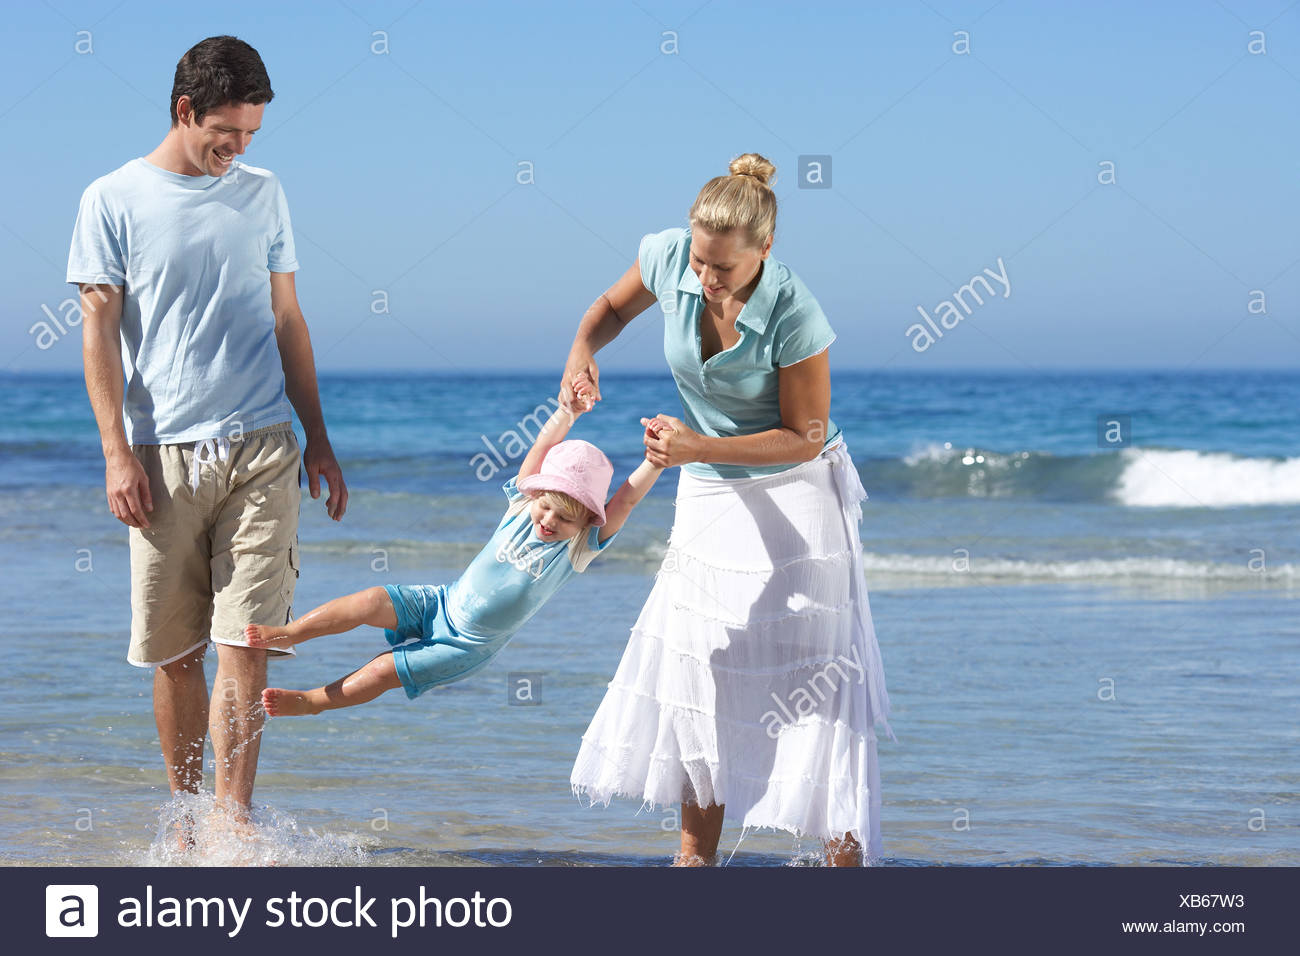 Family walking along beach ankle deep in water mother swinging daughter 2 4 smiling - Stock Image